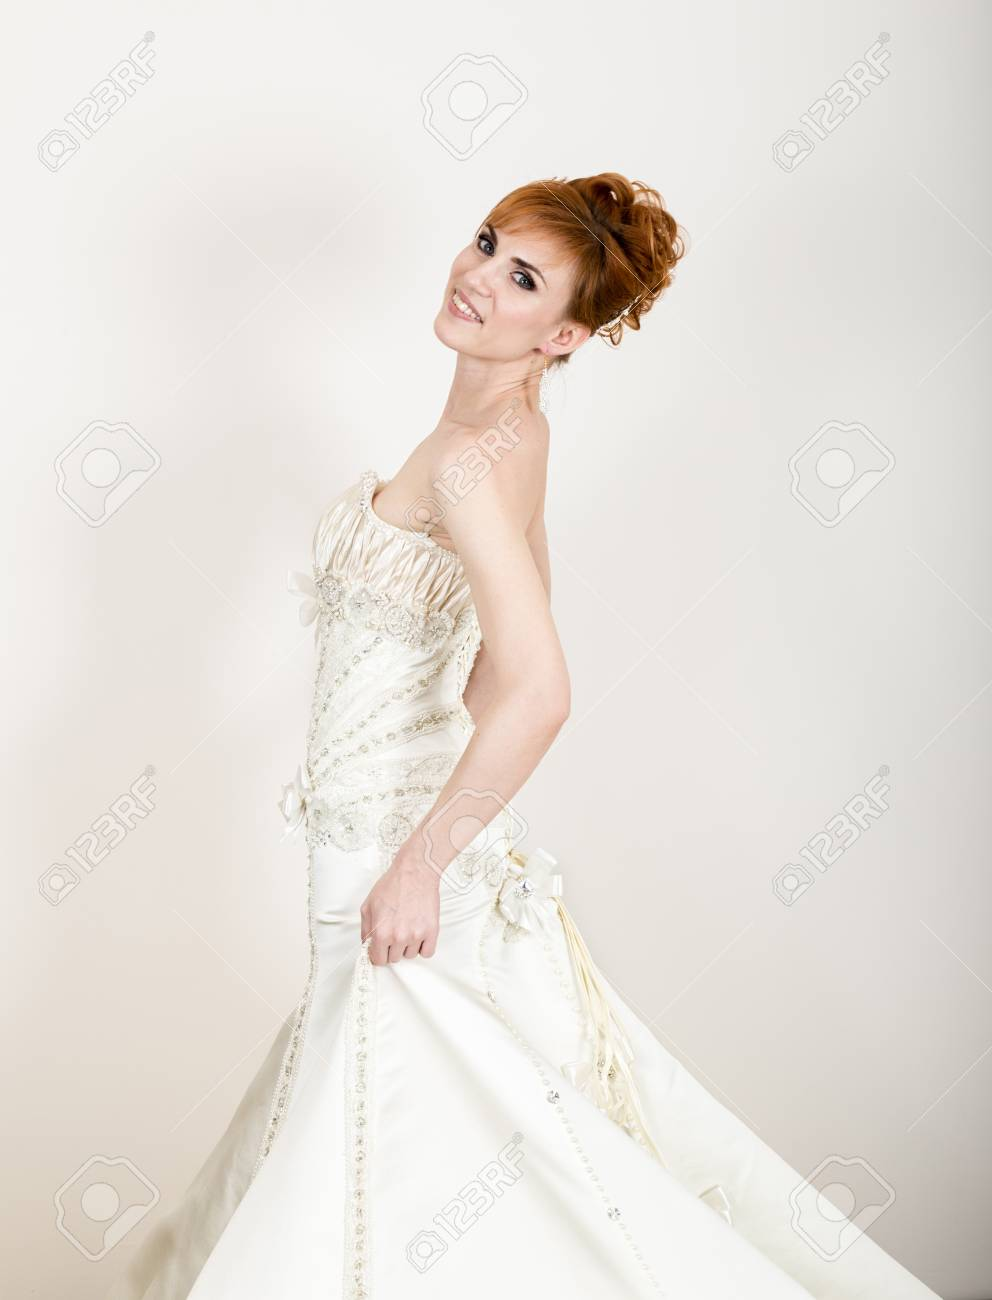 Wearing White To A Wedding.Beautiful Young Redhead Bride Wearing White Wedding Dress With